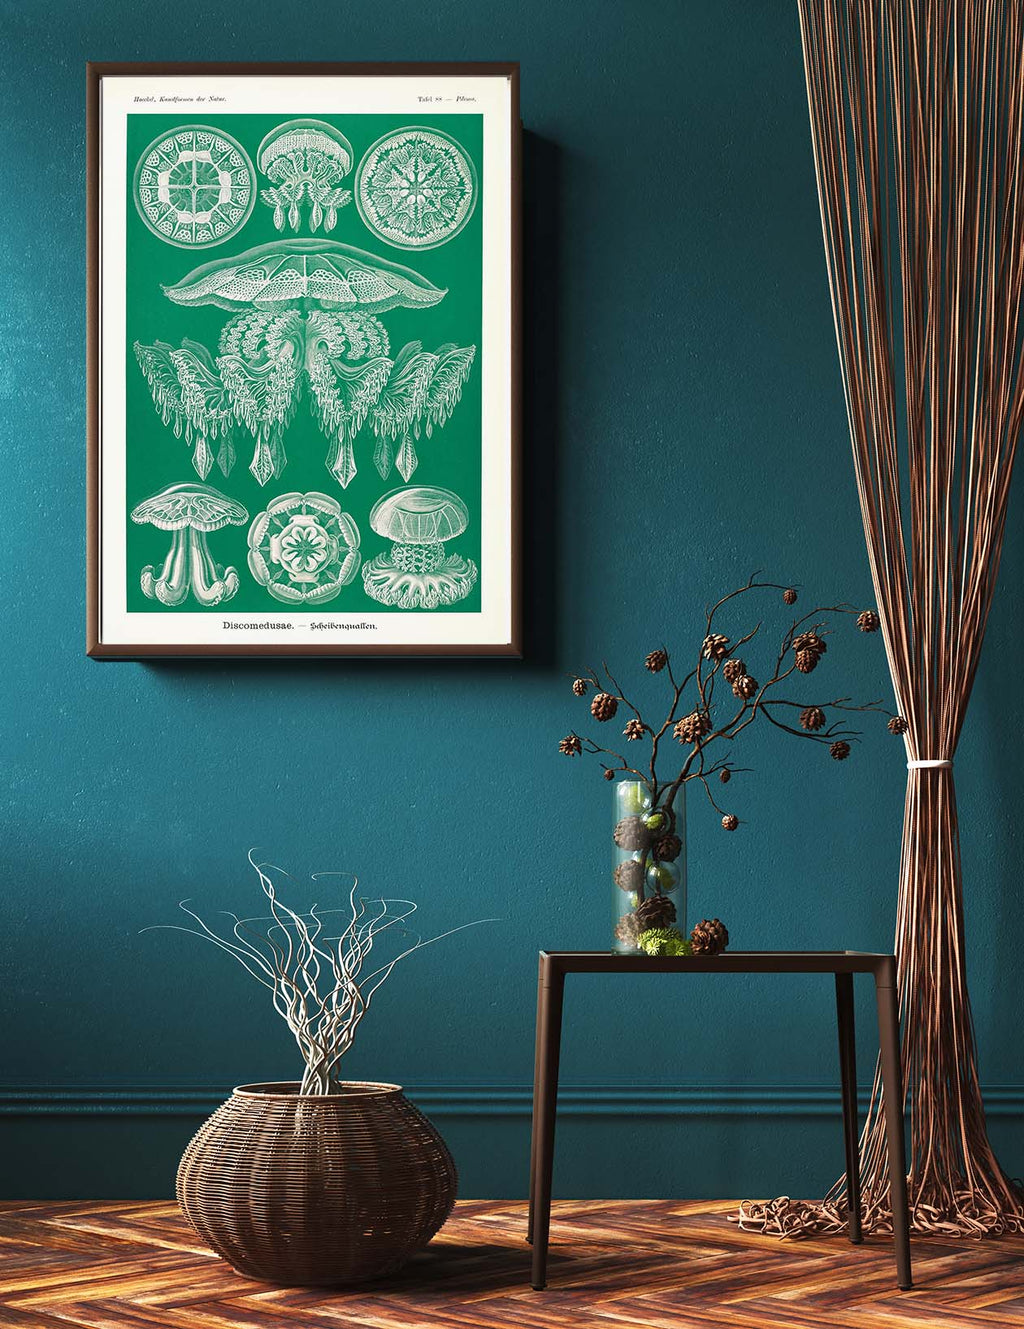 Discomedusae Green Jellyfish by Ernst Haeckel Poster with borders